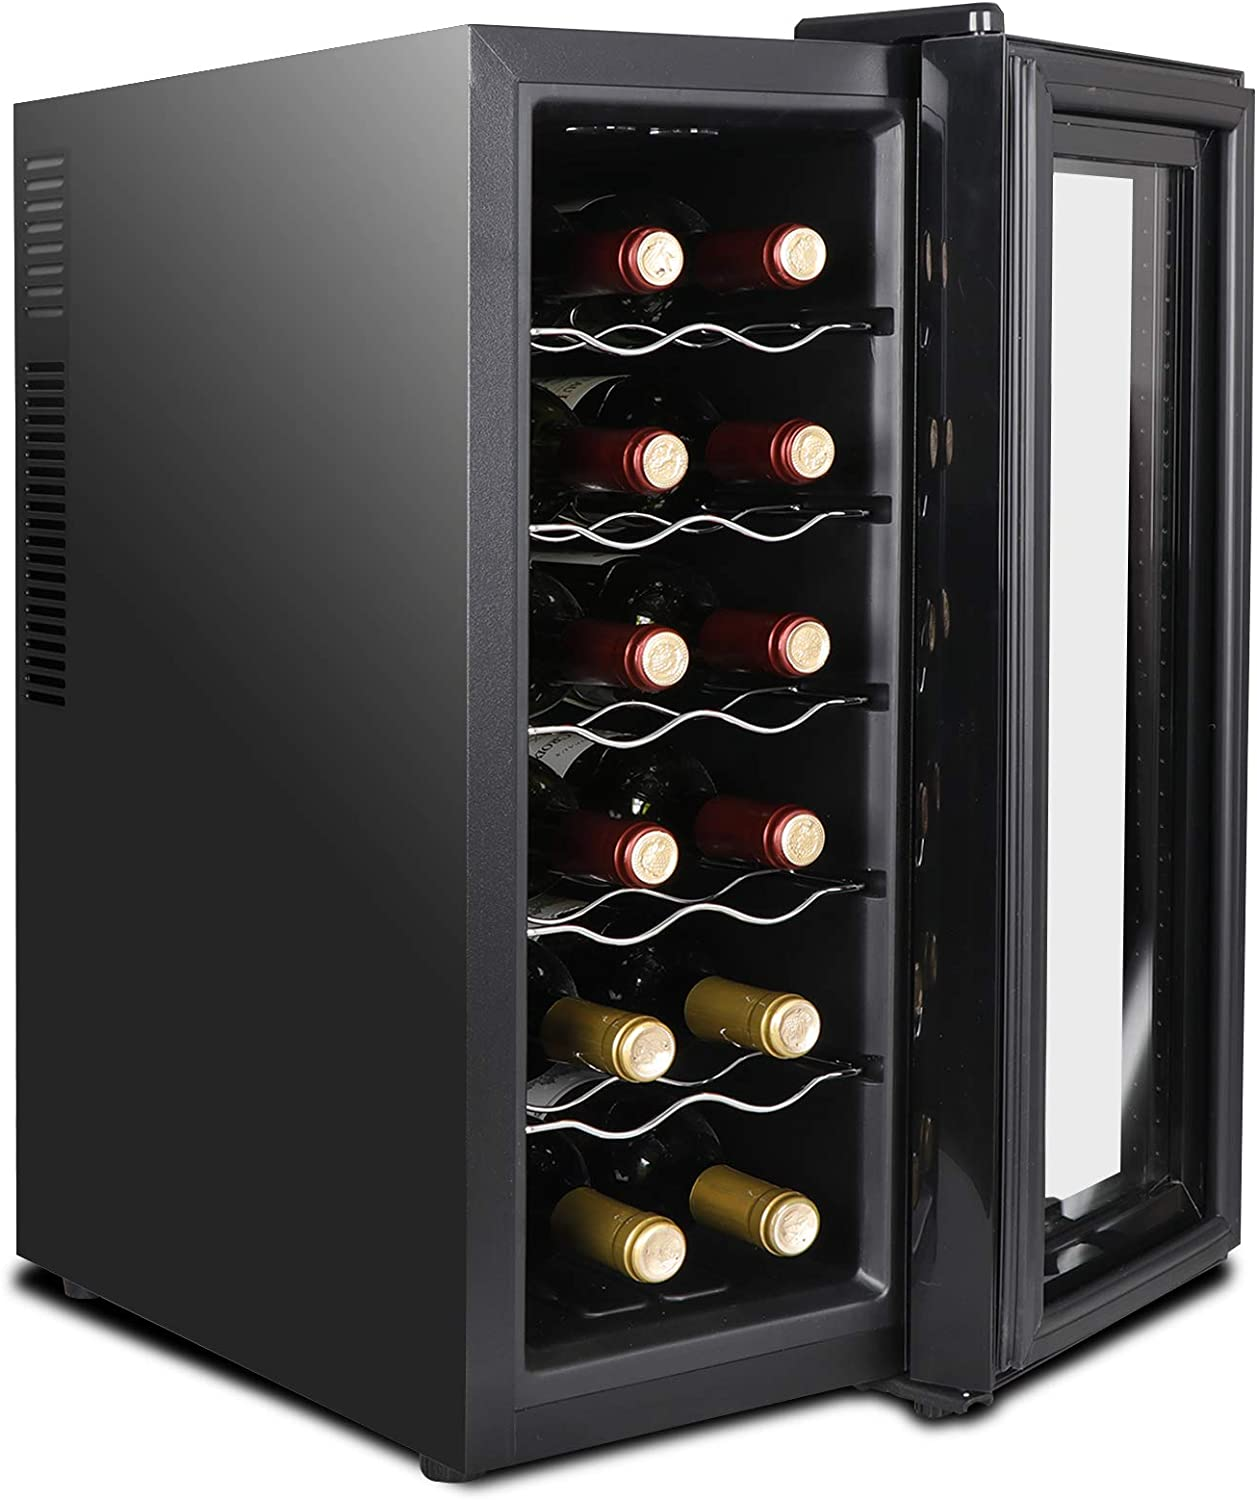 Touch Temperature Display Thermoelectric Wine Cooler Refrigerator Quiet Operation Fridge Counter Top Wine Cooler ZENY 12 Bottle Red//White//Champagne Chiller